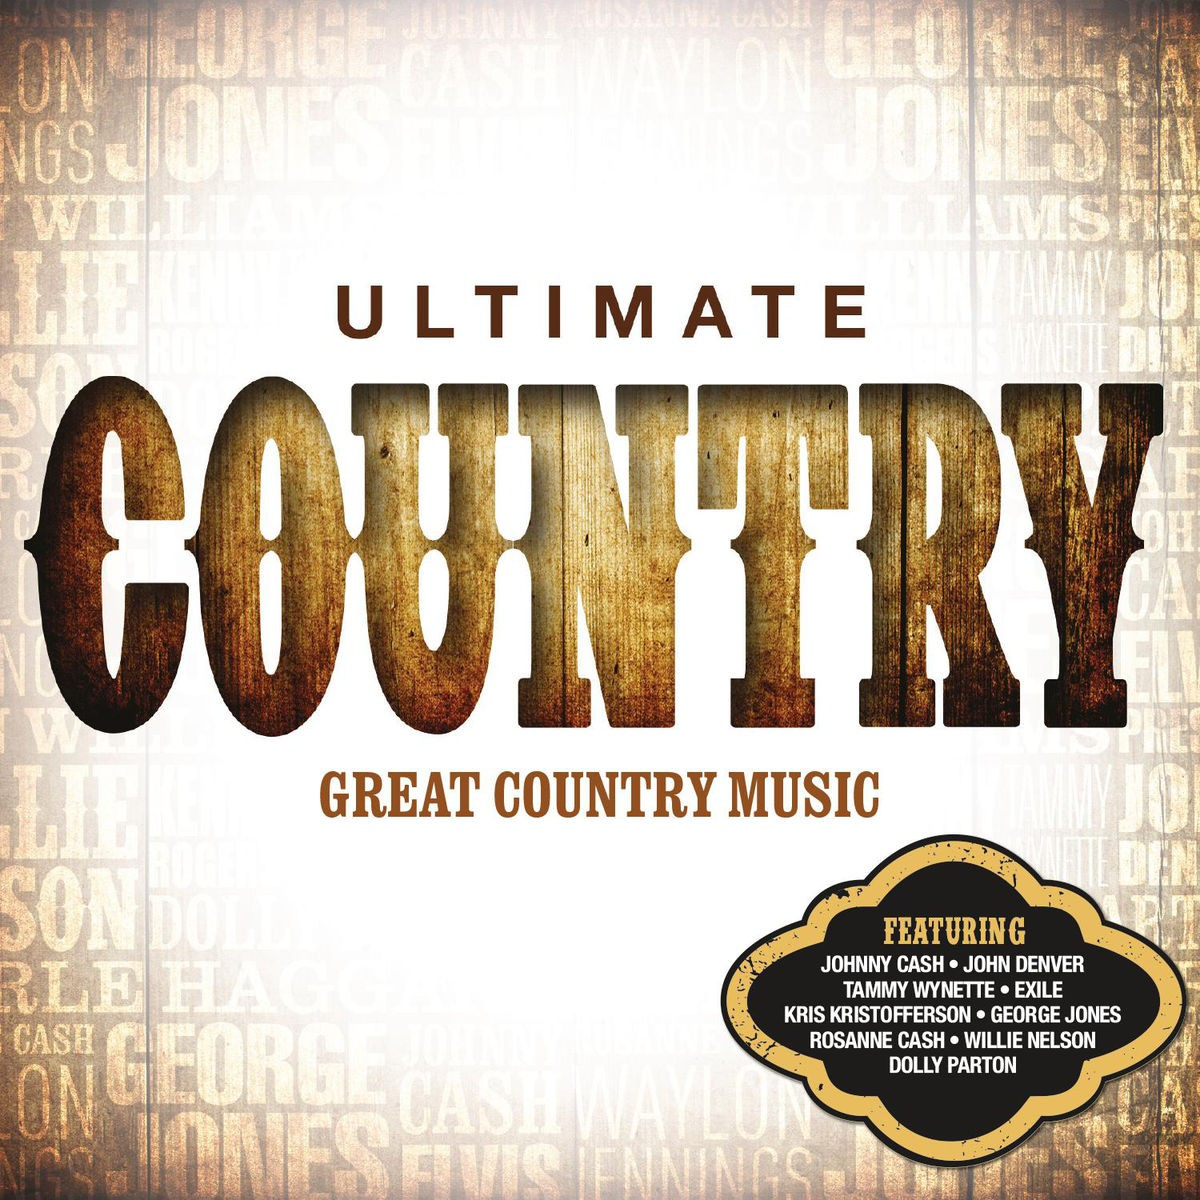 Ultimate... Country CD - CDSM615